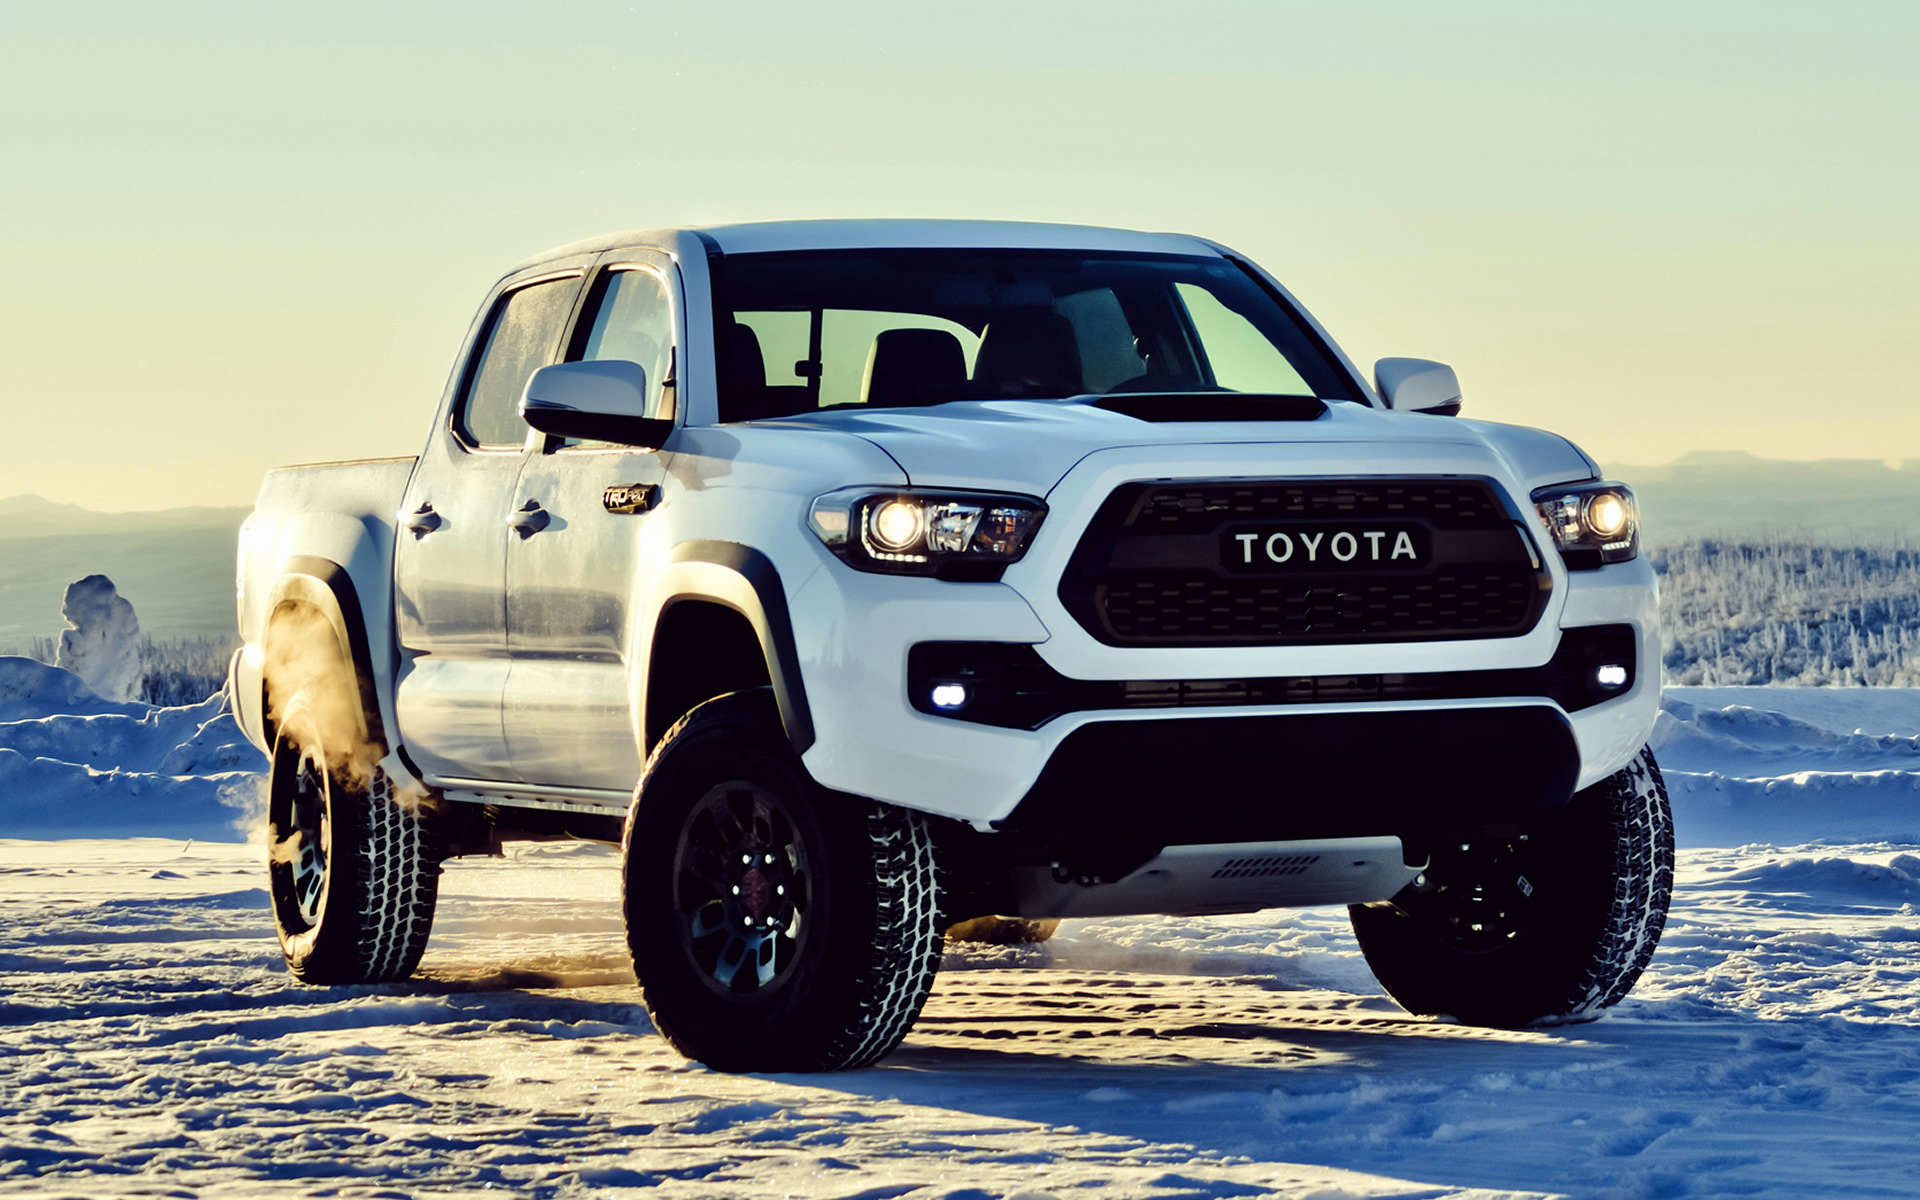 Toyota Tacoma TRD Pro Double Cab (2017) Wallpapers and HD Images - Car Pixel